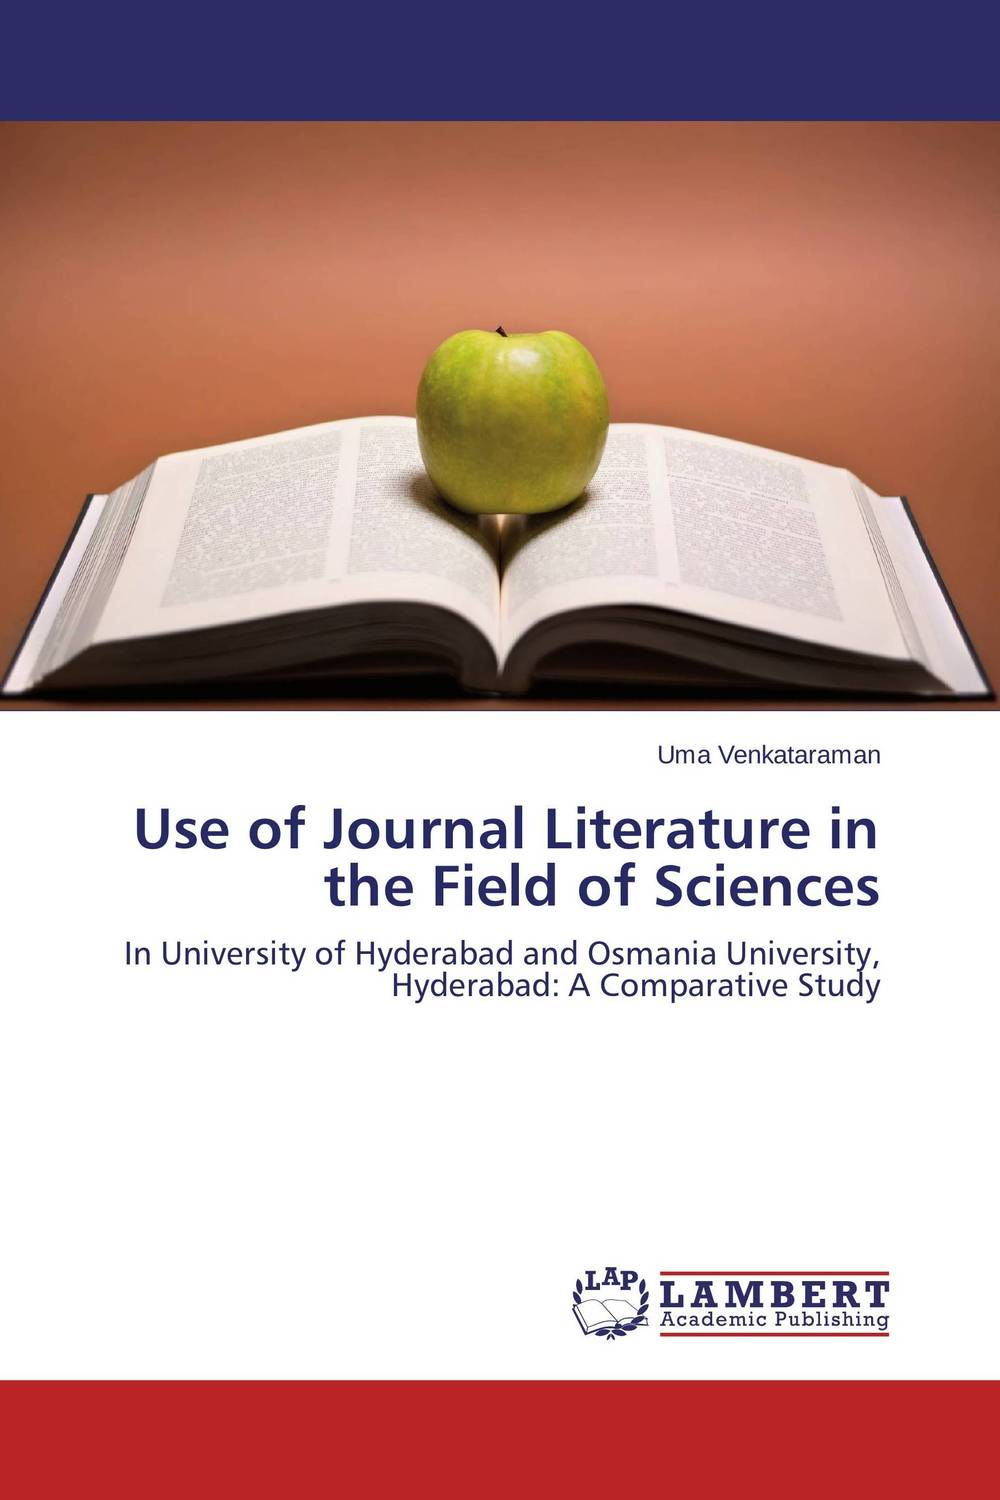 Use of Journal Literature in the Field of Sciences use of journal literature in the field of sciences